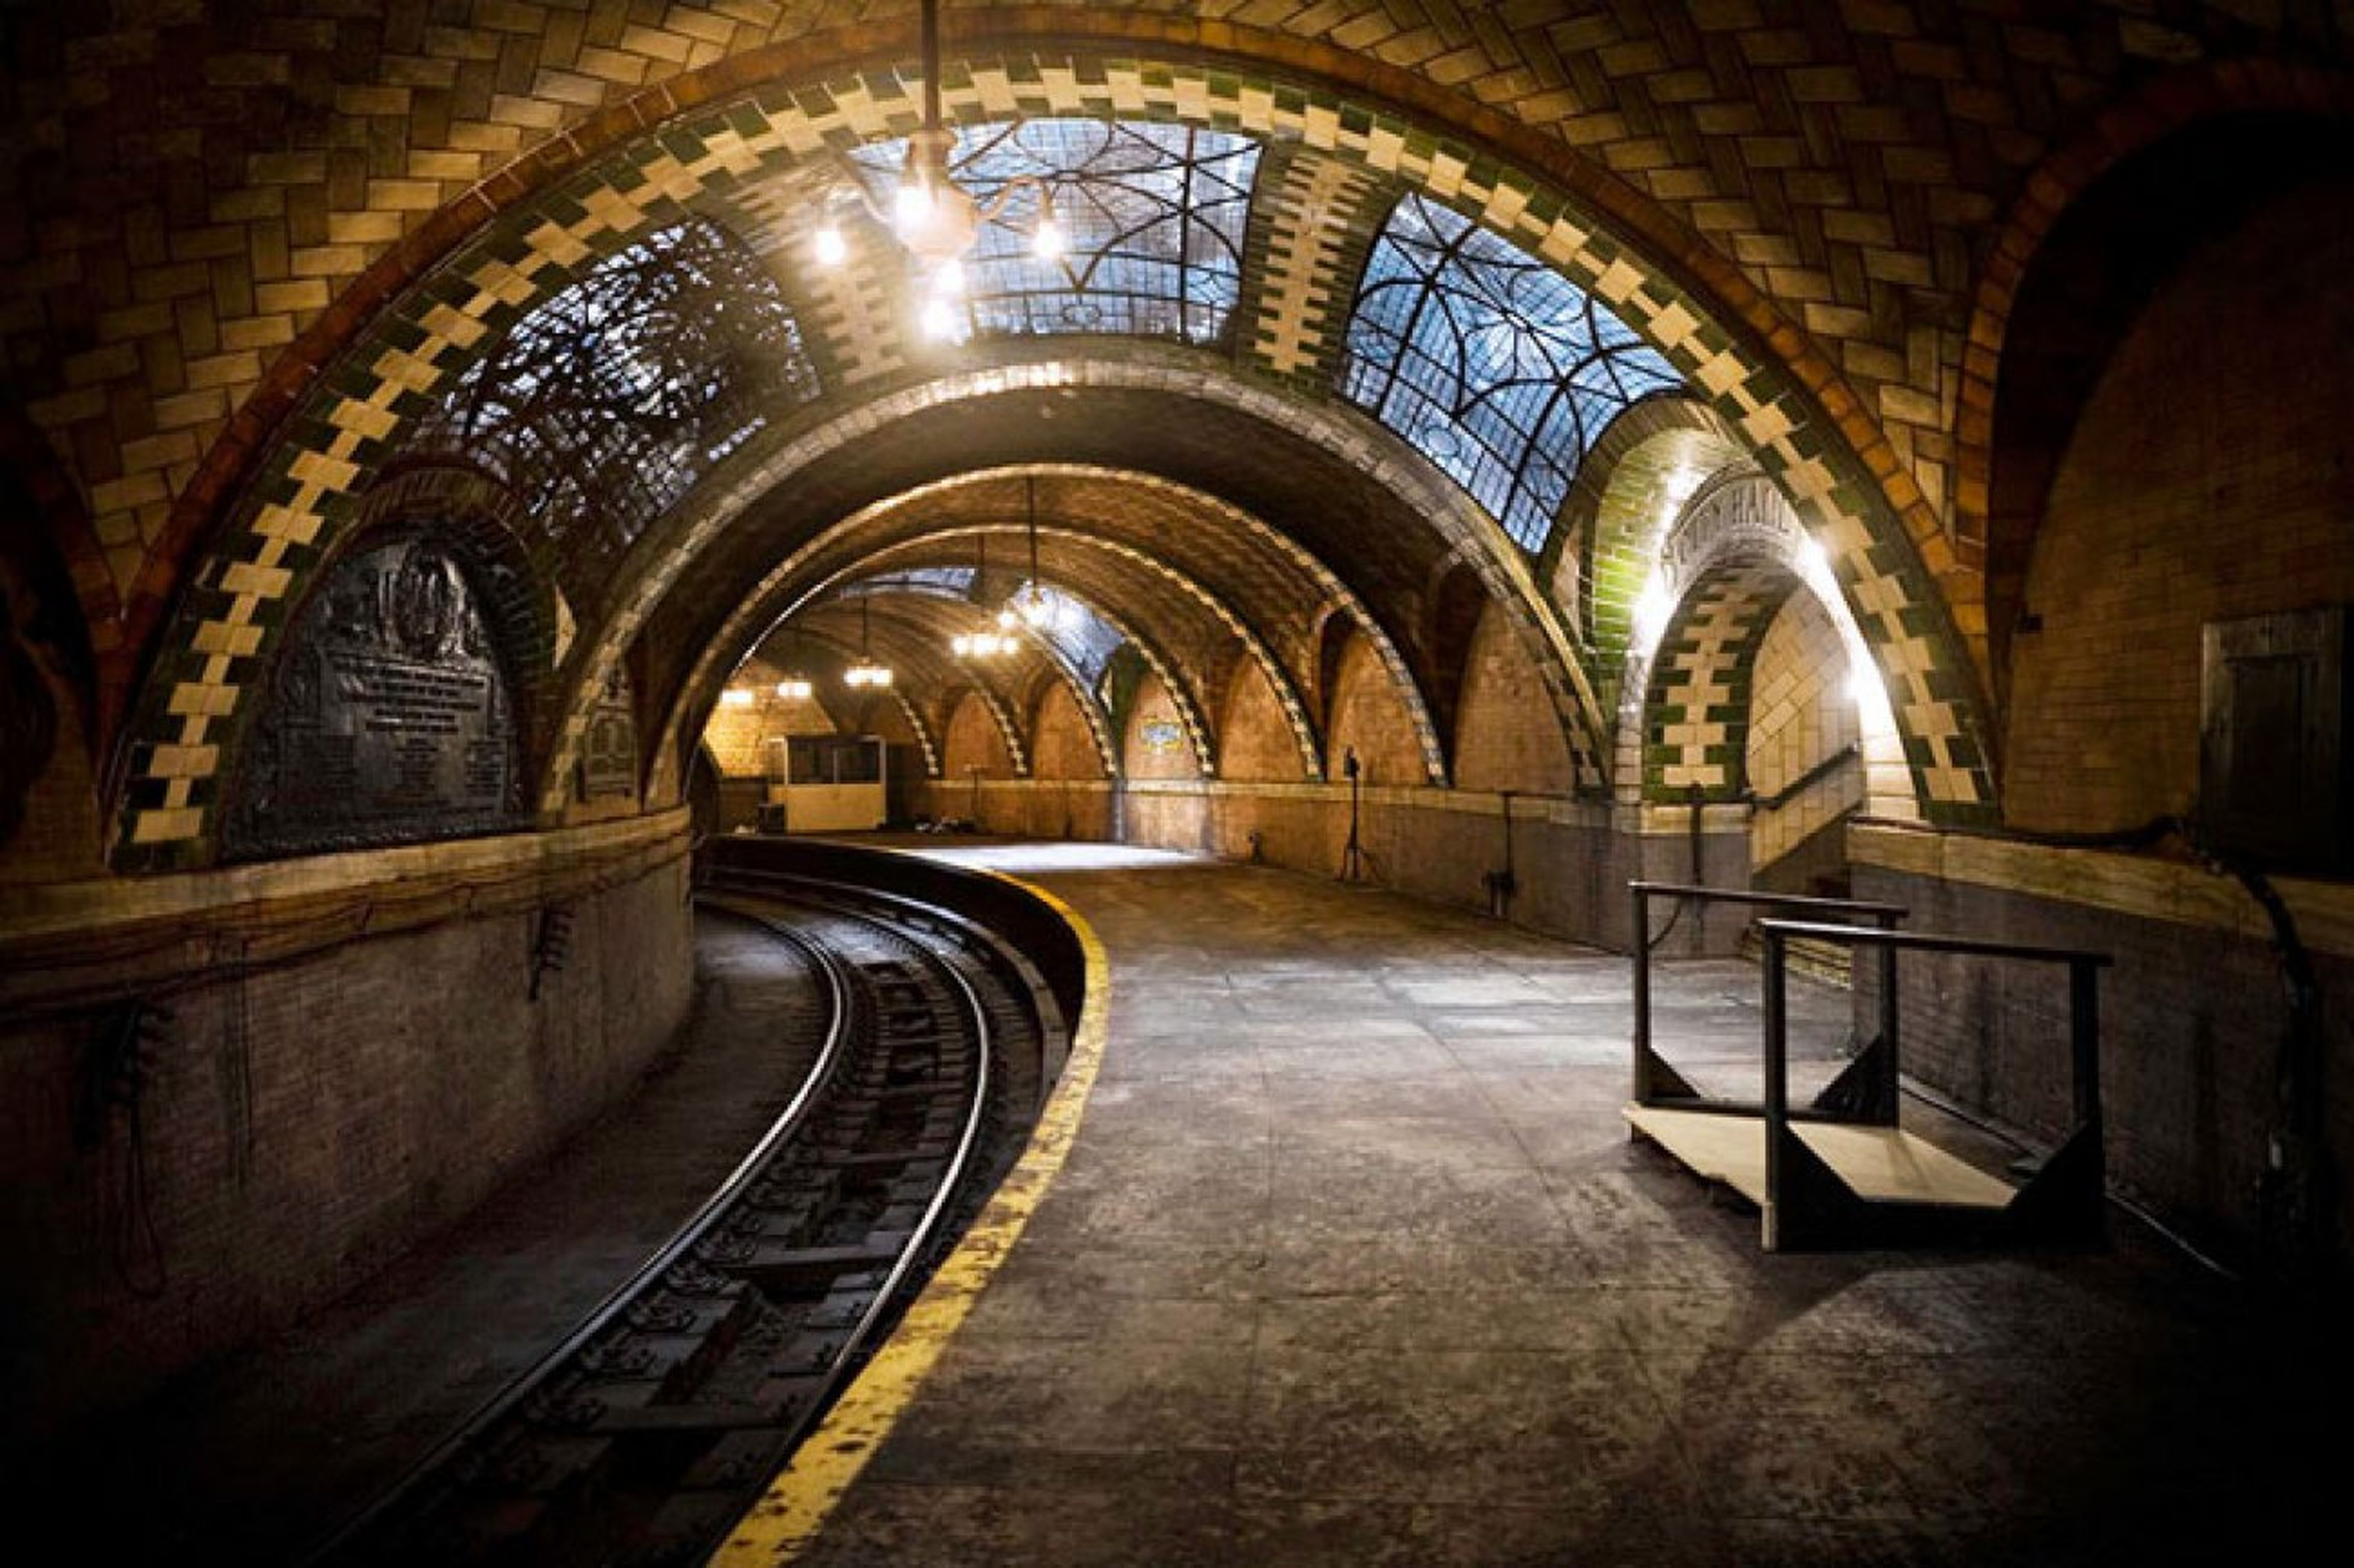 indoors, arch, architecture, the way forward, built structure, diminishing perspective, empty, tunnel, absence, vanishing point, corridor, steps, archway, ceiling, narrow, building, no people, railing, interior, walkway